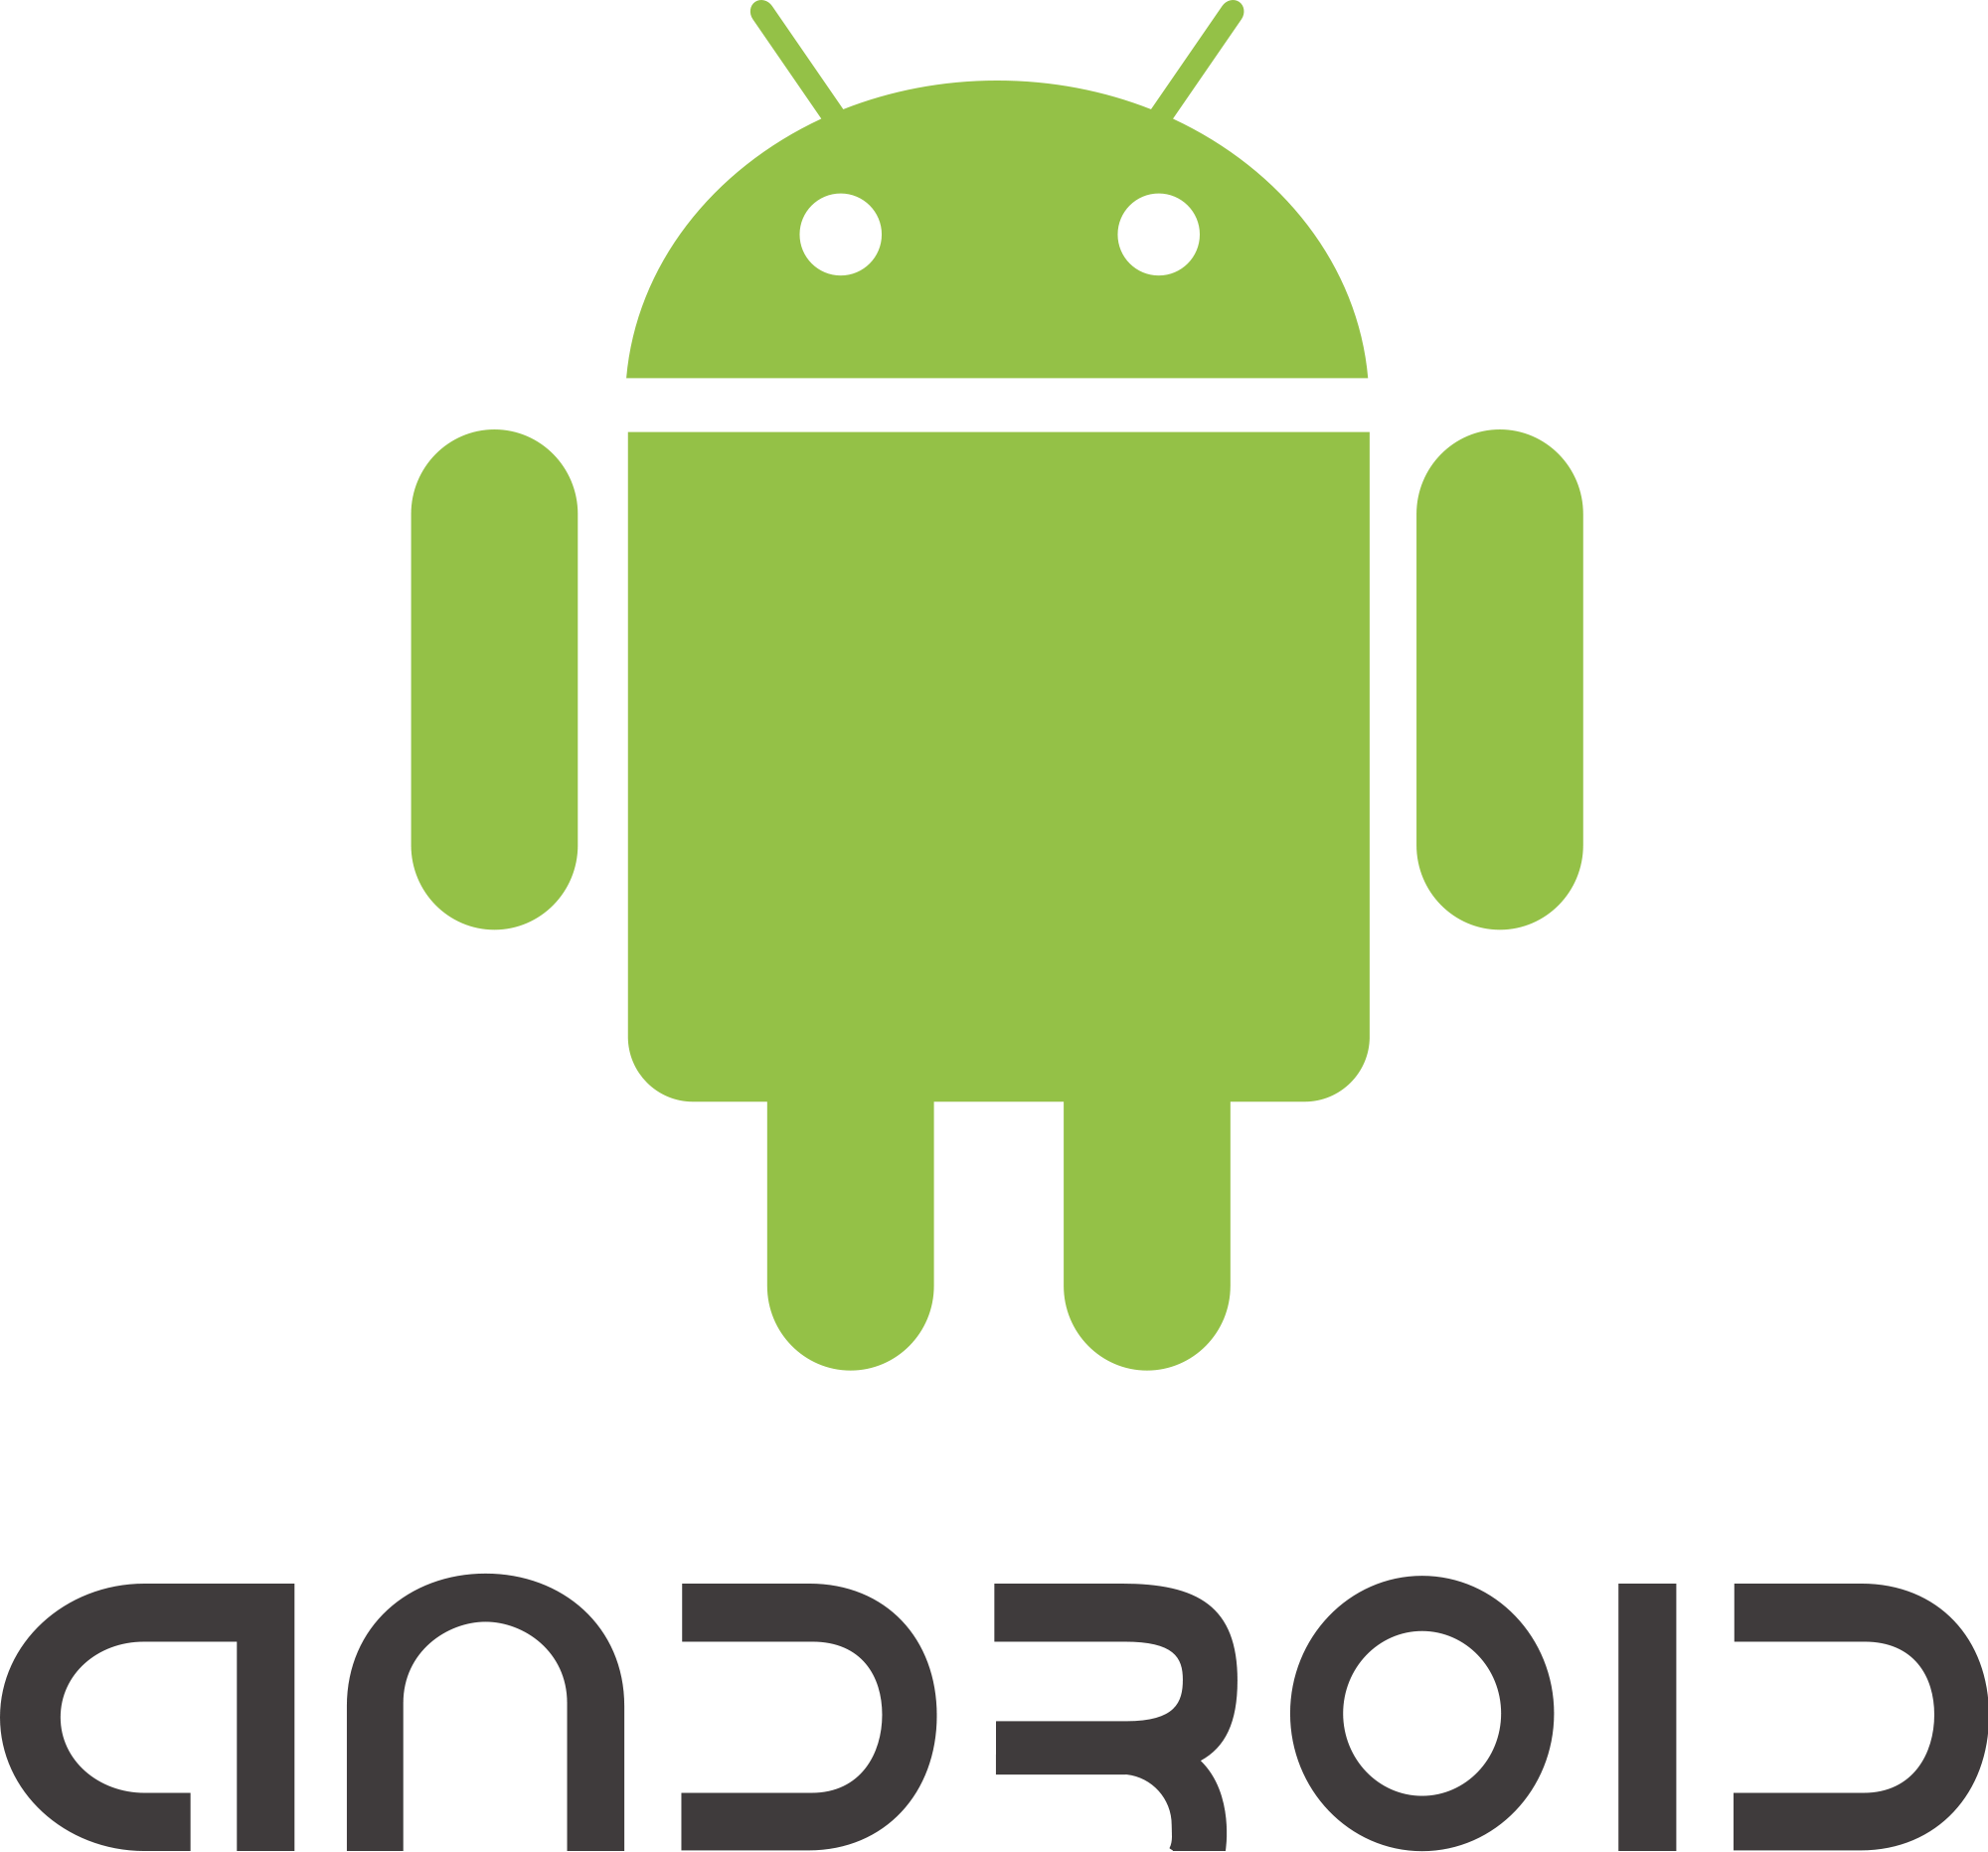 Competition clipart oligopoly. Smartphone think smart act